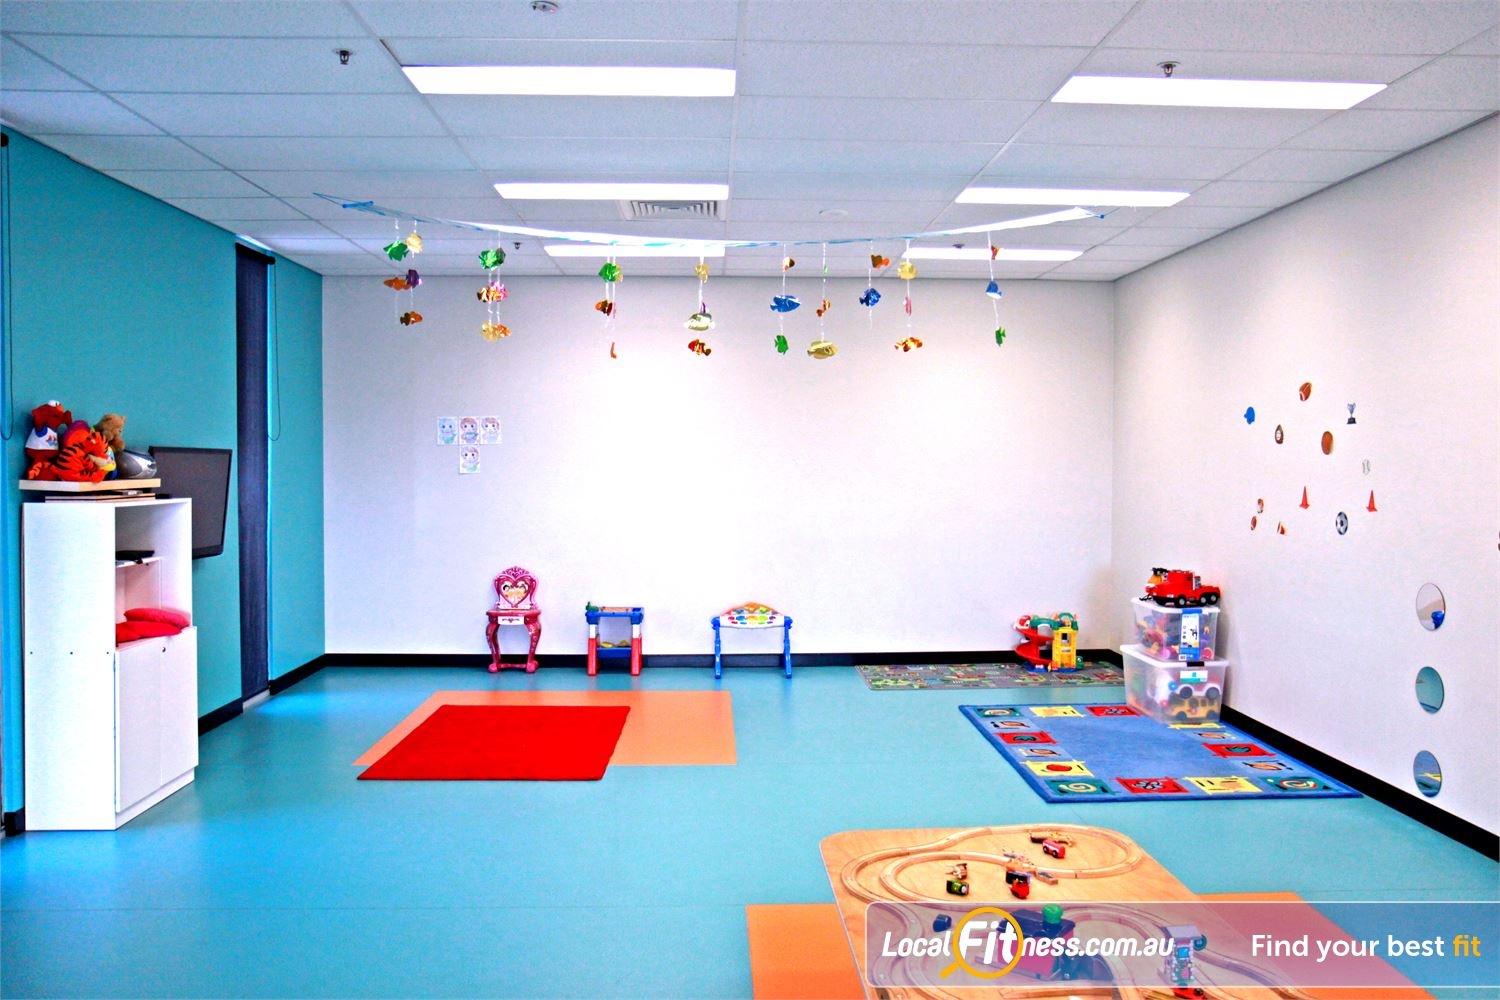 Goodlife Health Clubs Near Newtown Ipswich child minding is part of our family friendly gym environment.